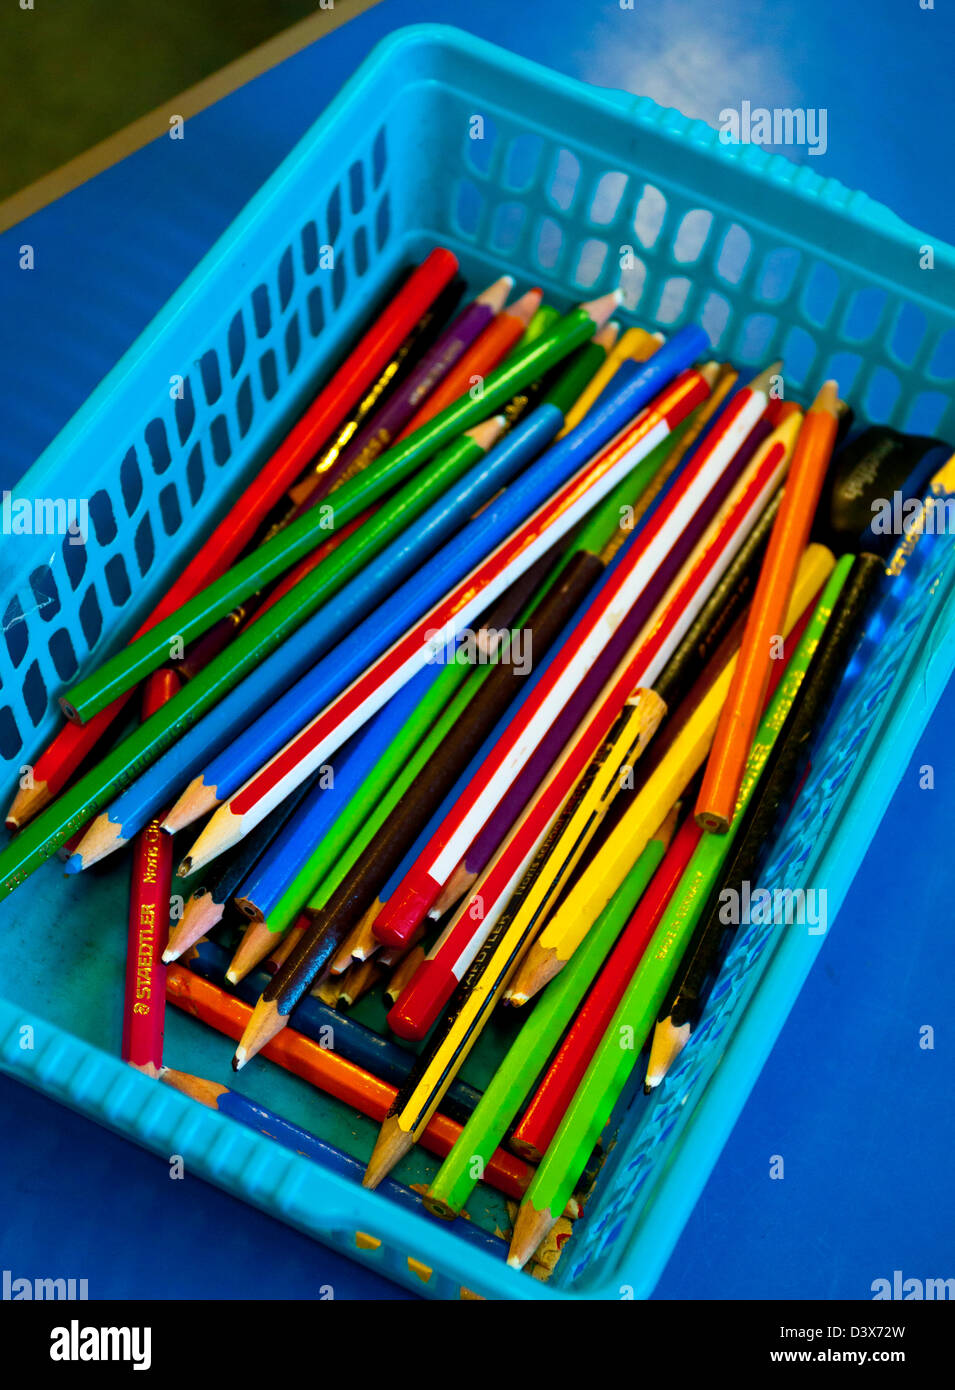 Close up view of colourful pencils in a plastic basket in a school classroom Stock Photo